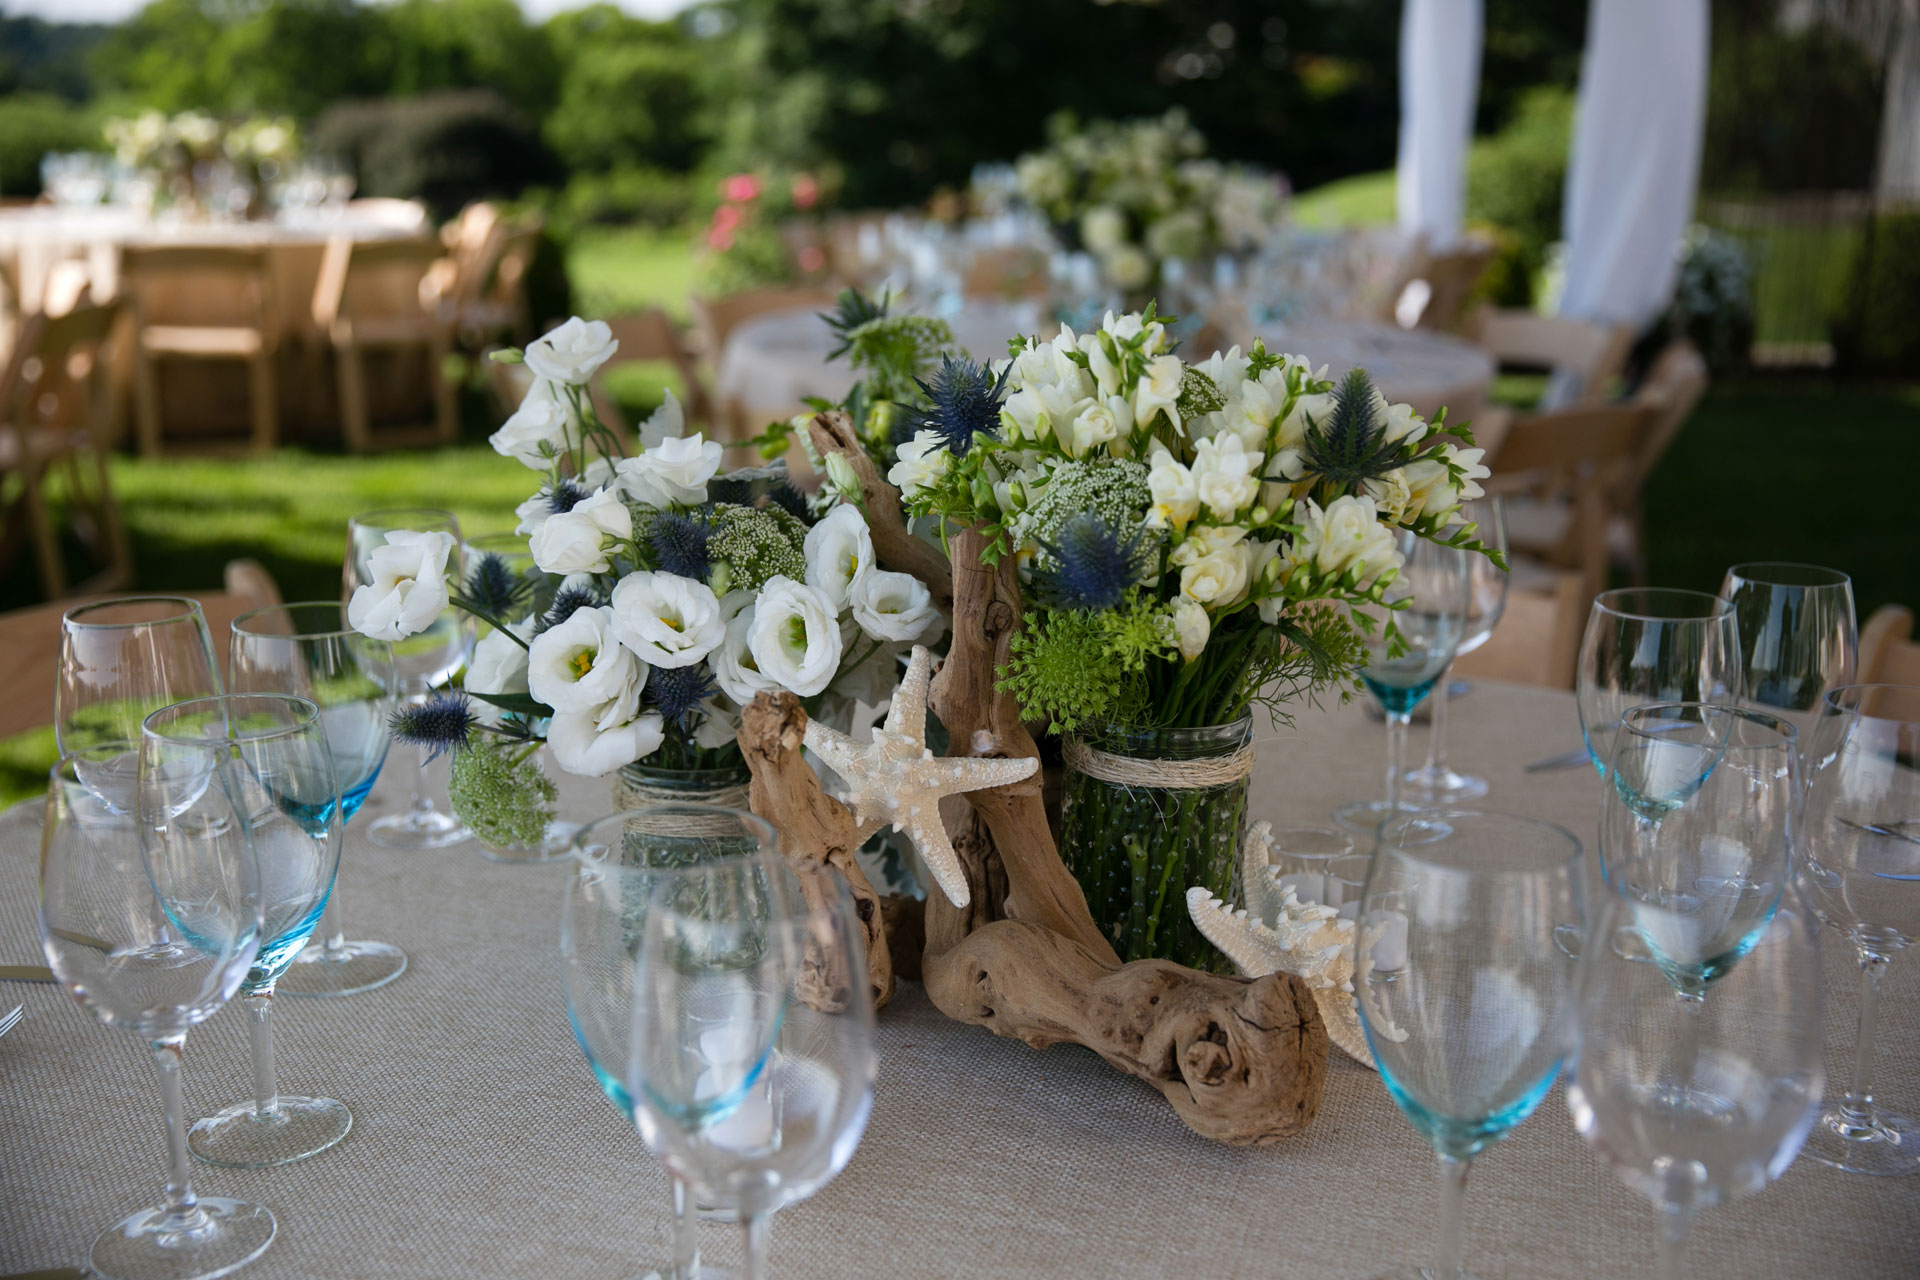 Elegant Effects in Floral Design - Rehearsal Dinner